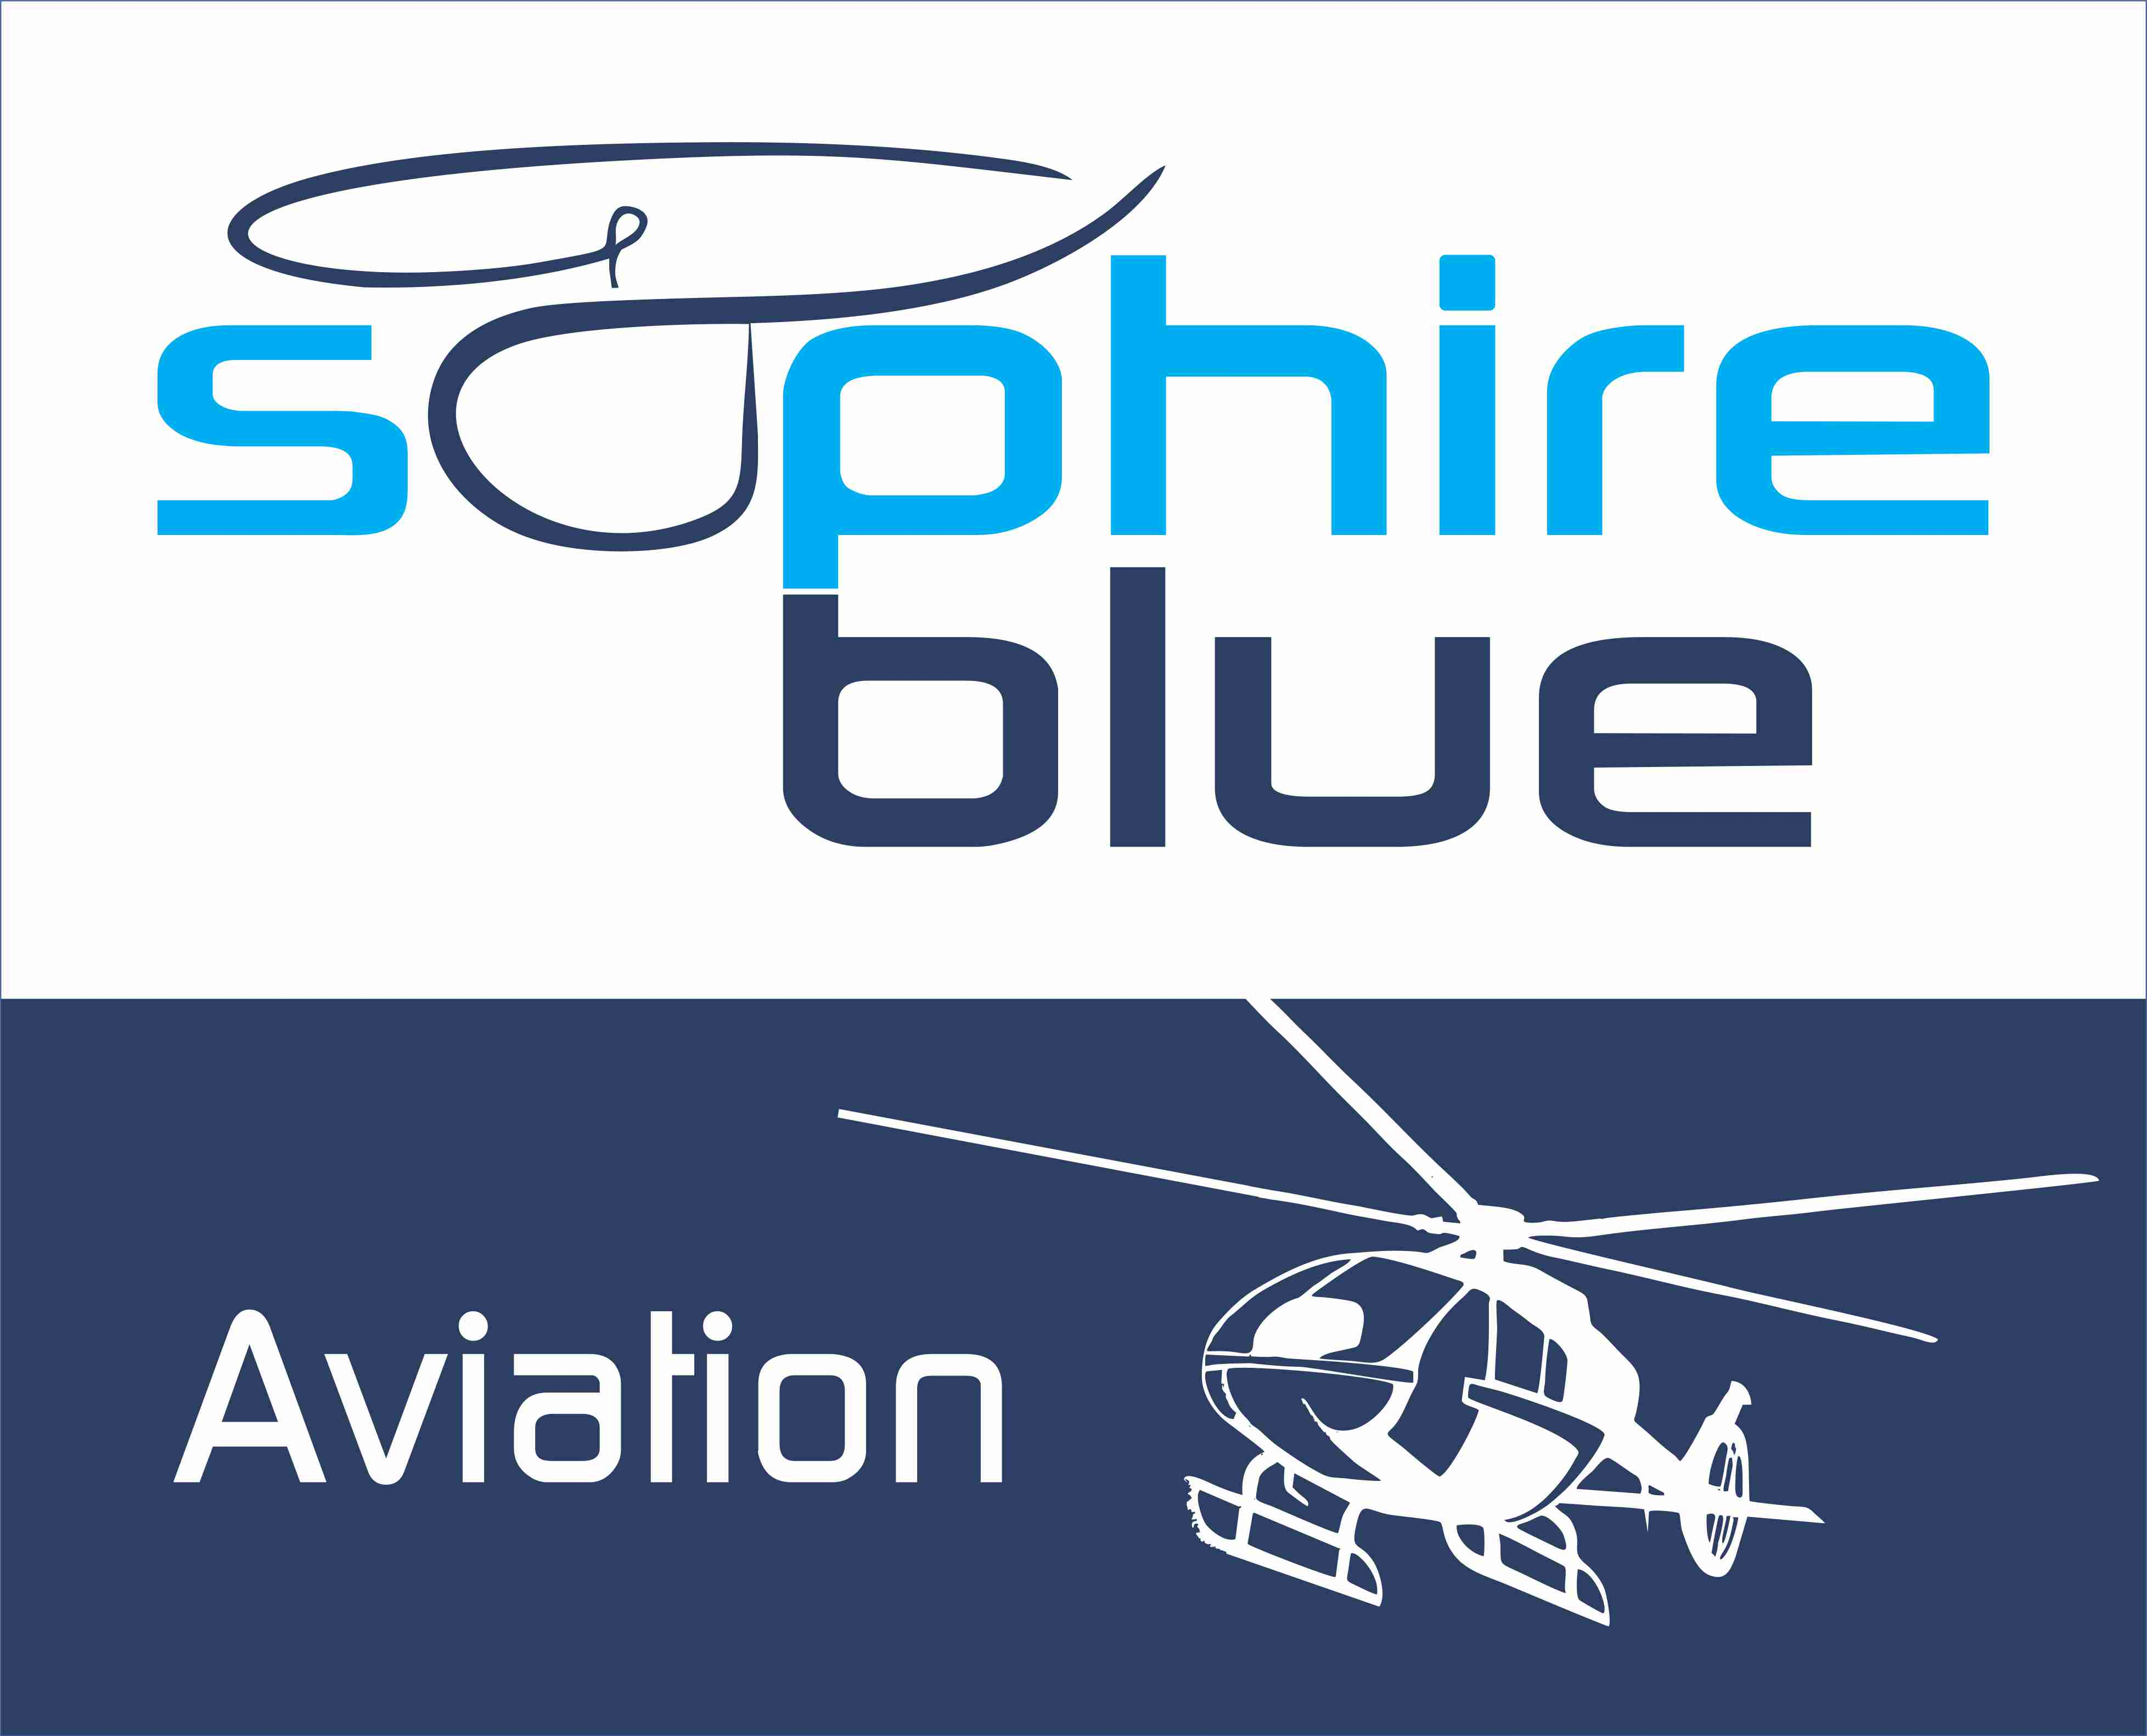 Saphire Blue Aviation